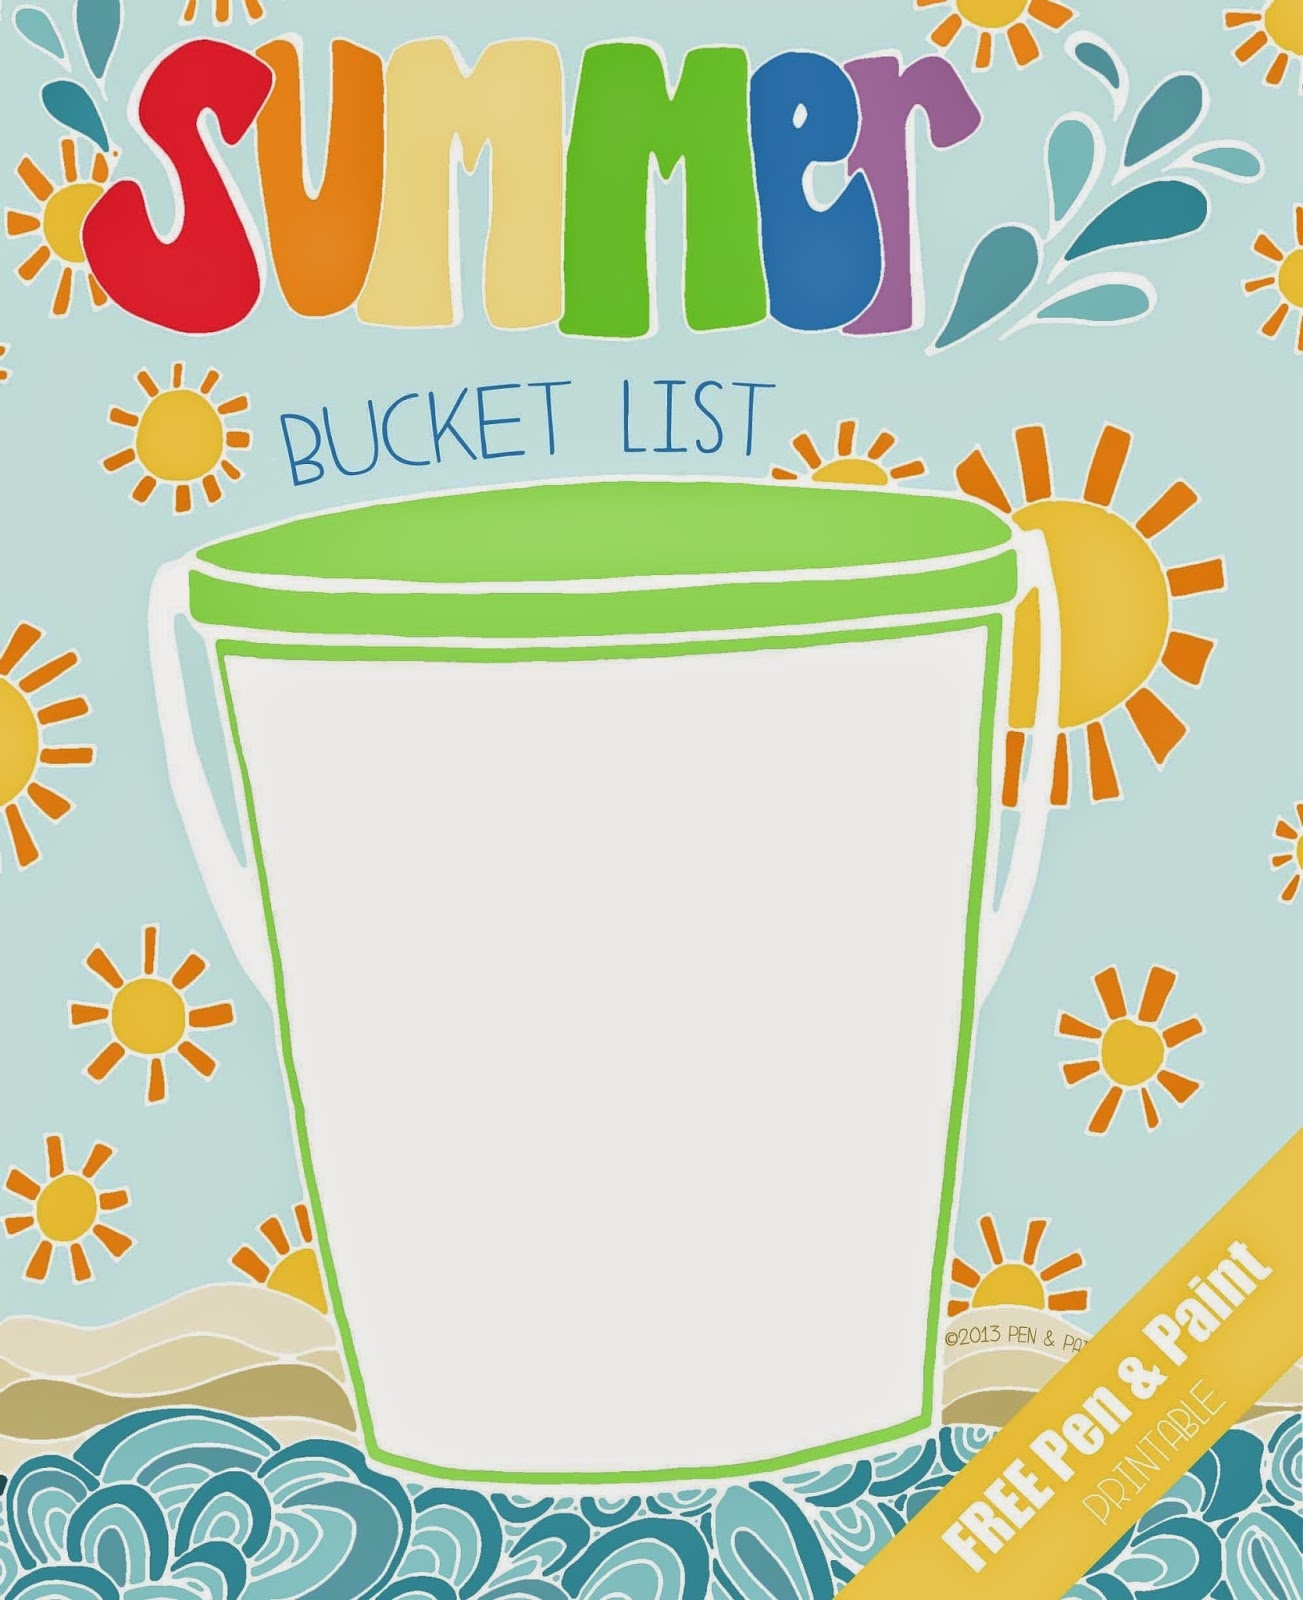 Pen & Paint: Free Printable & Coloring Page - Summer Bucket List - Free Printable Summer Pictures